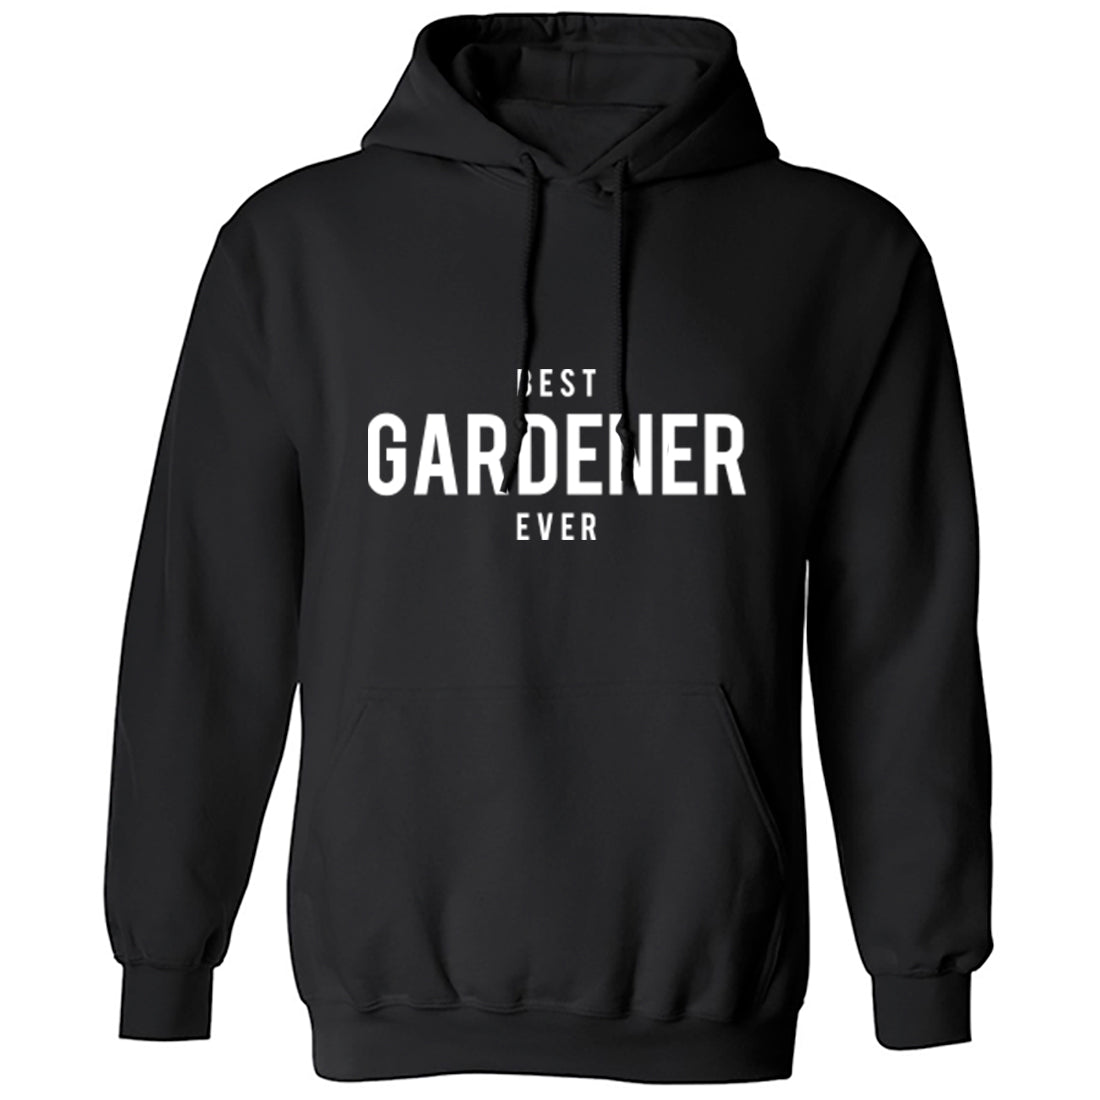 Best Gardener Ever Unisex Hoodie K1509 - Illustrated Identity Ltd.